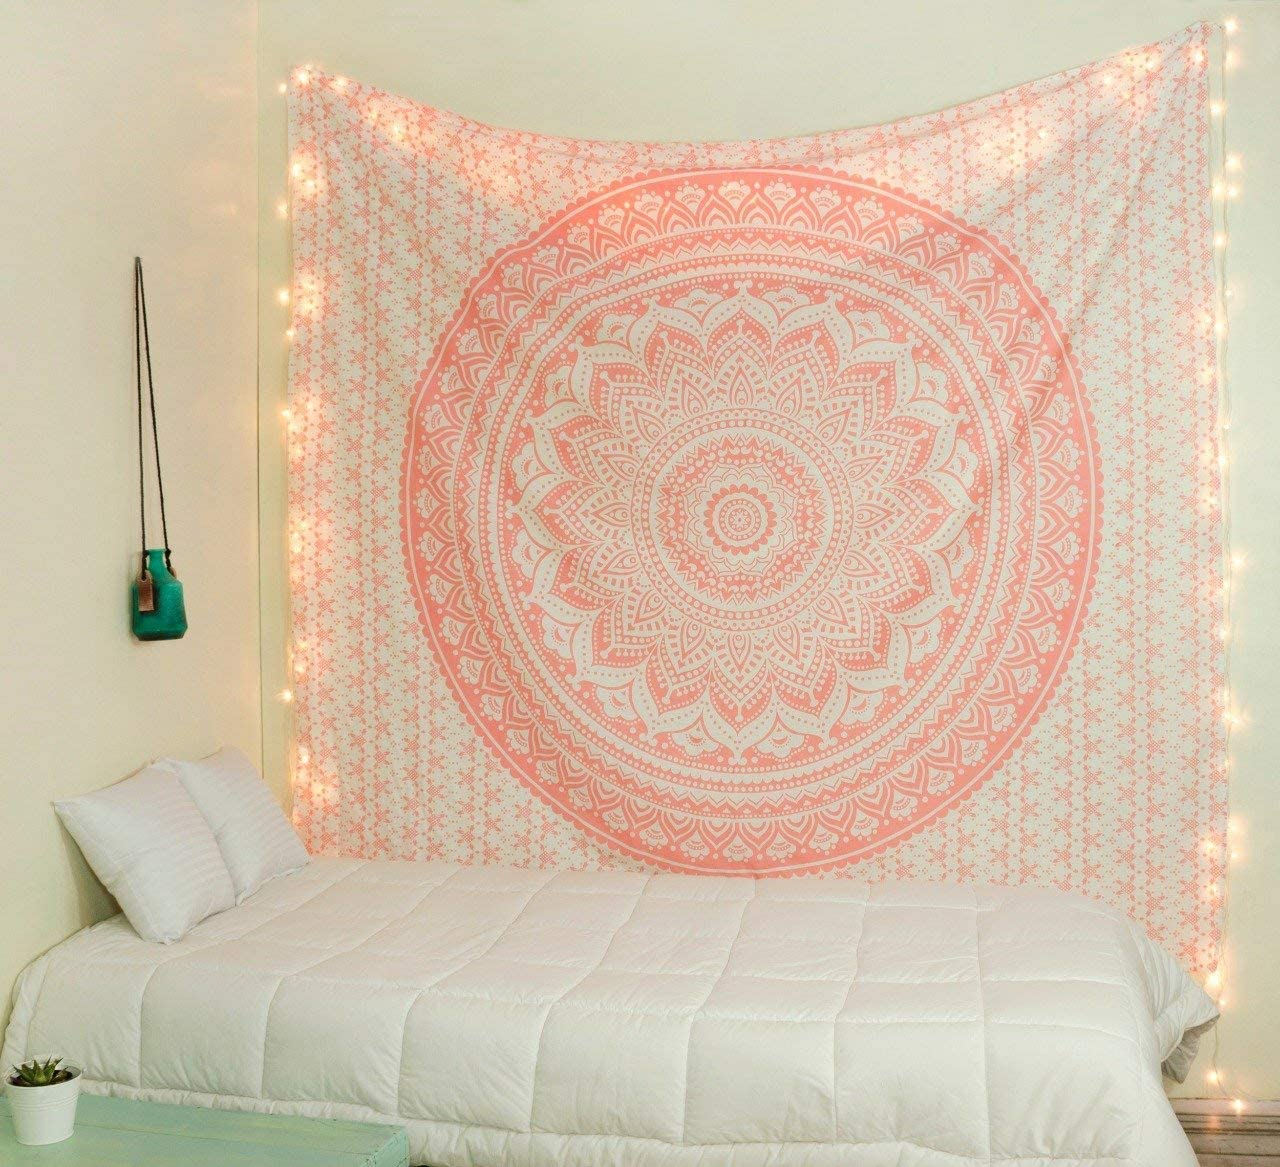 THE ART BOX Tapestry Rose Gold Mandala Wall Hanging Psychedelic Tapestries Indian Cotton Twin Bedspread Picnic Sheet Wall Decor Blanket Wall Art Hippie Bedroom Décor